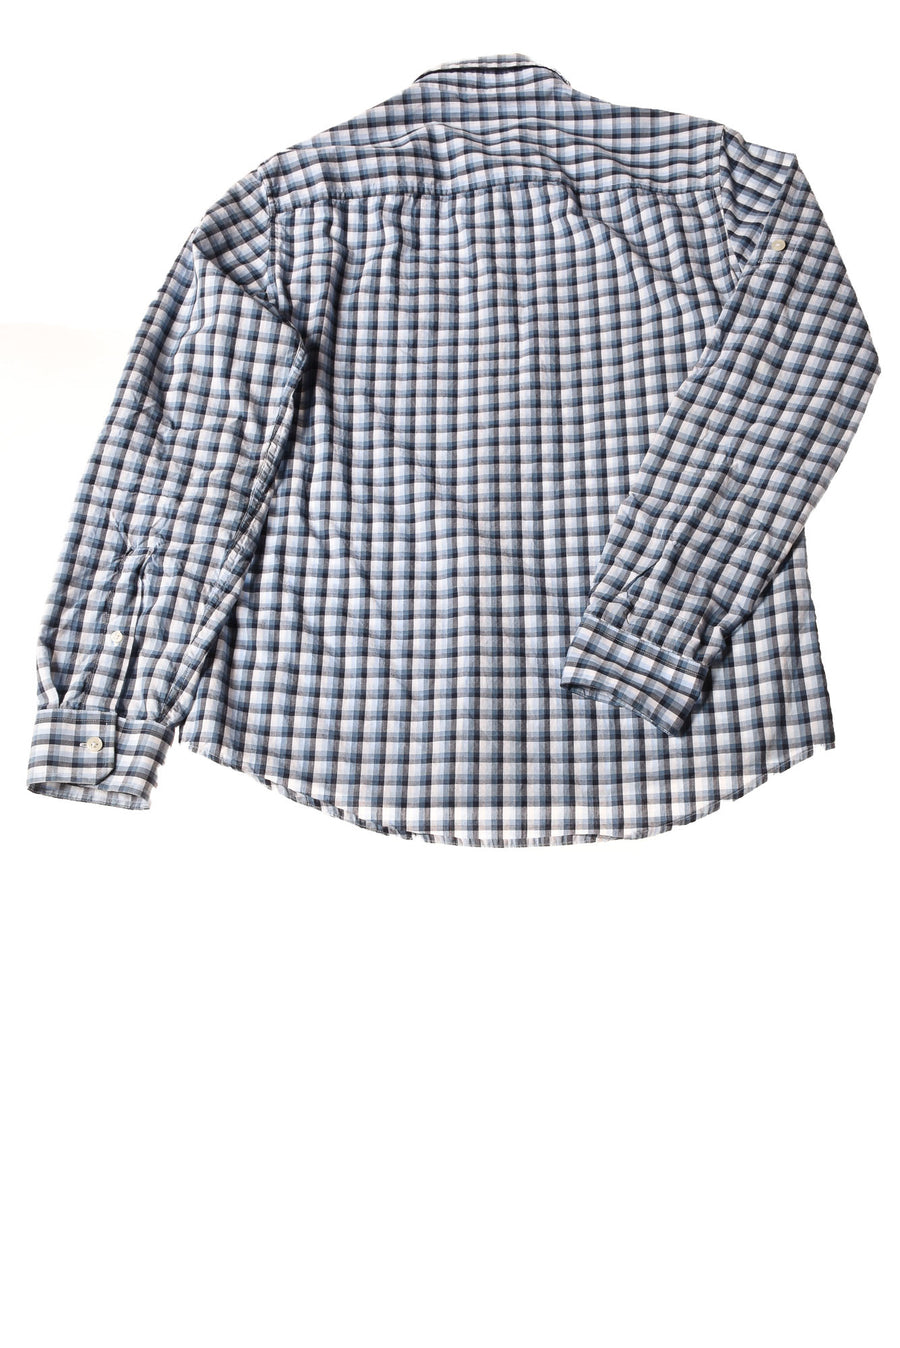 Men's Shirt By Micheal Kors